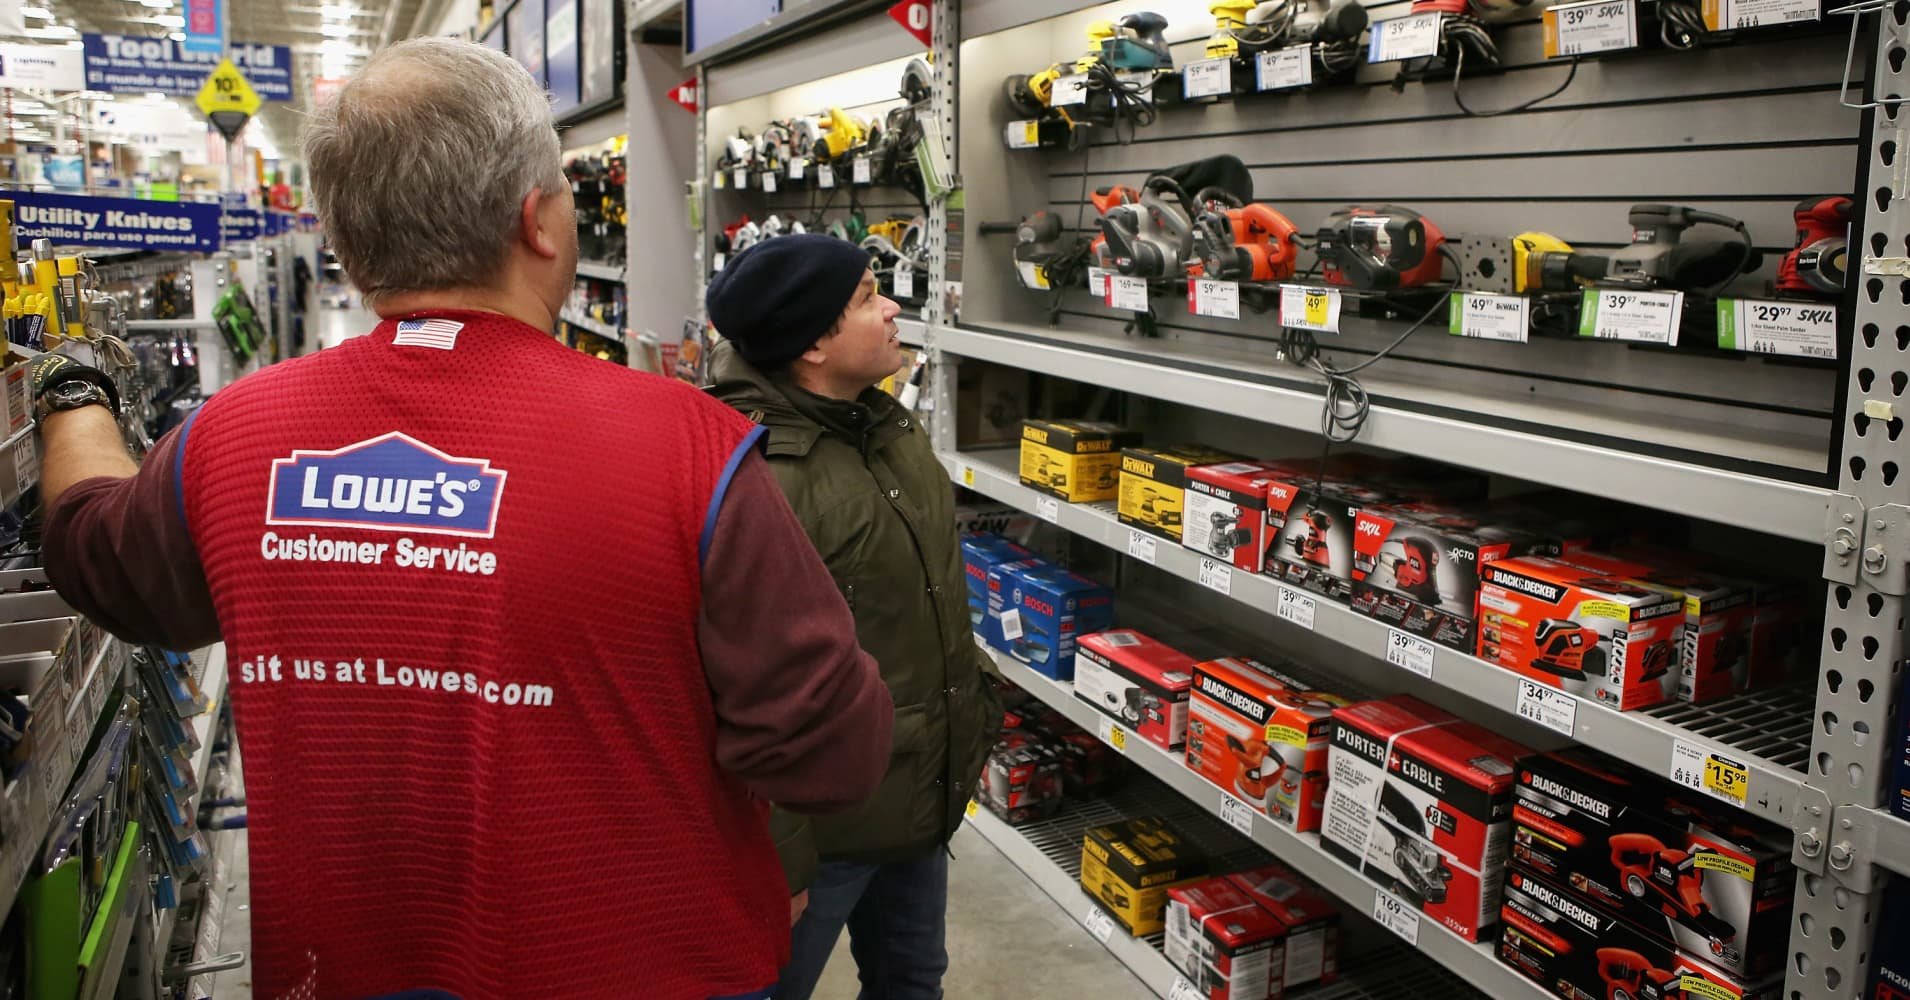 Lowes Stock Quote These 5 Things Are Driving The Surge In Lowe's Stock